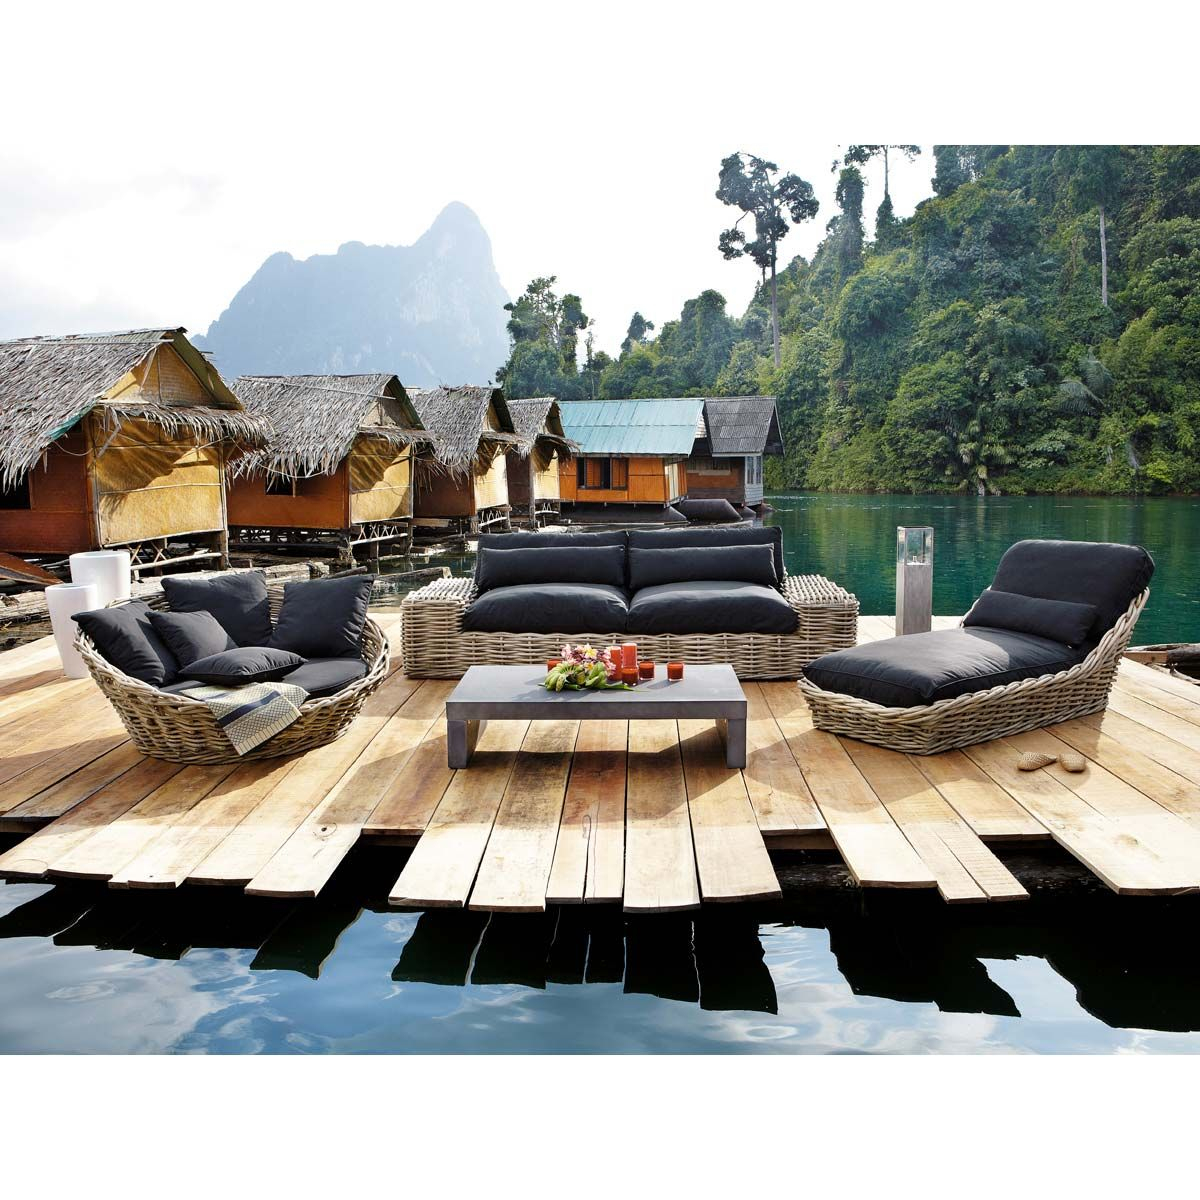 Outdoor Furniture In 2020 | Outdoor Furniture Sets, Outdoor ... tout Table Jardin Maison Du Monde